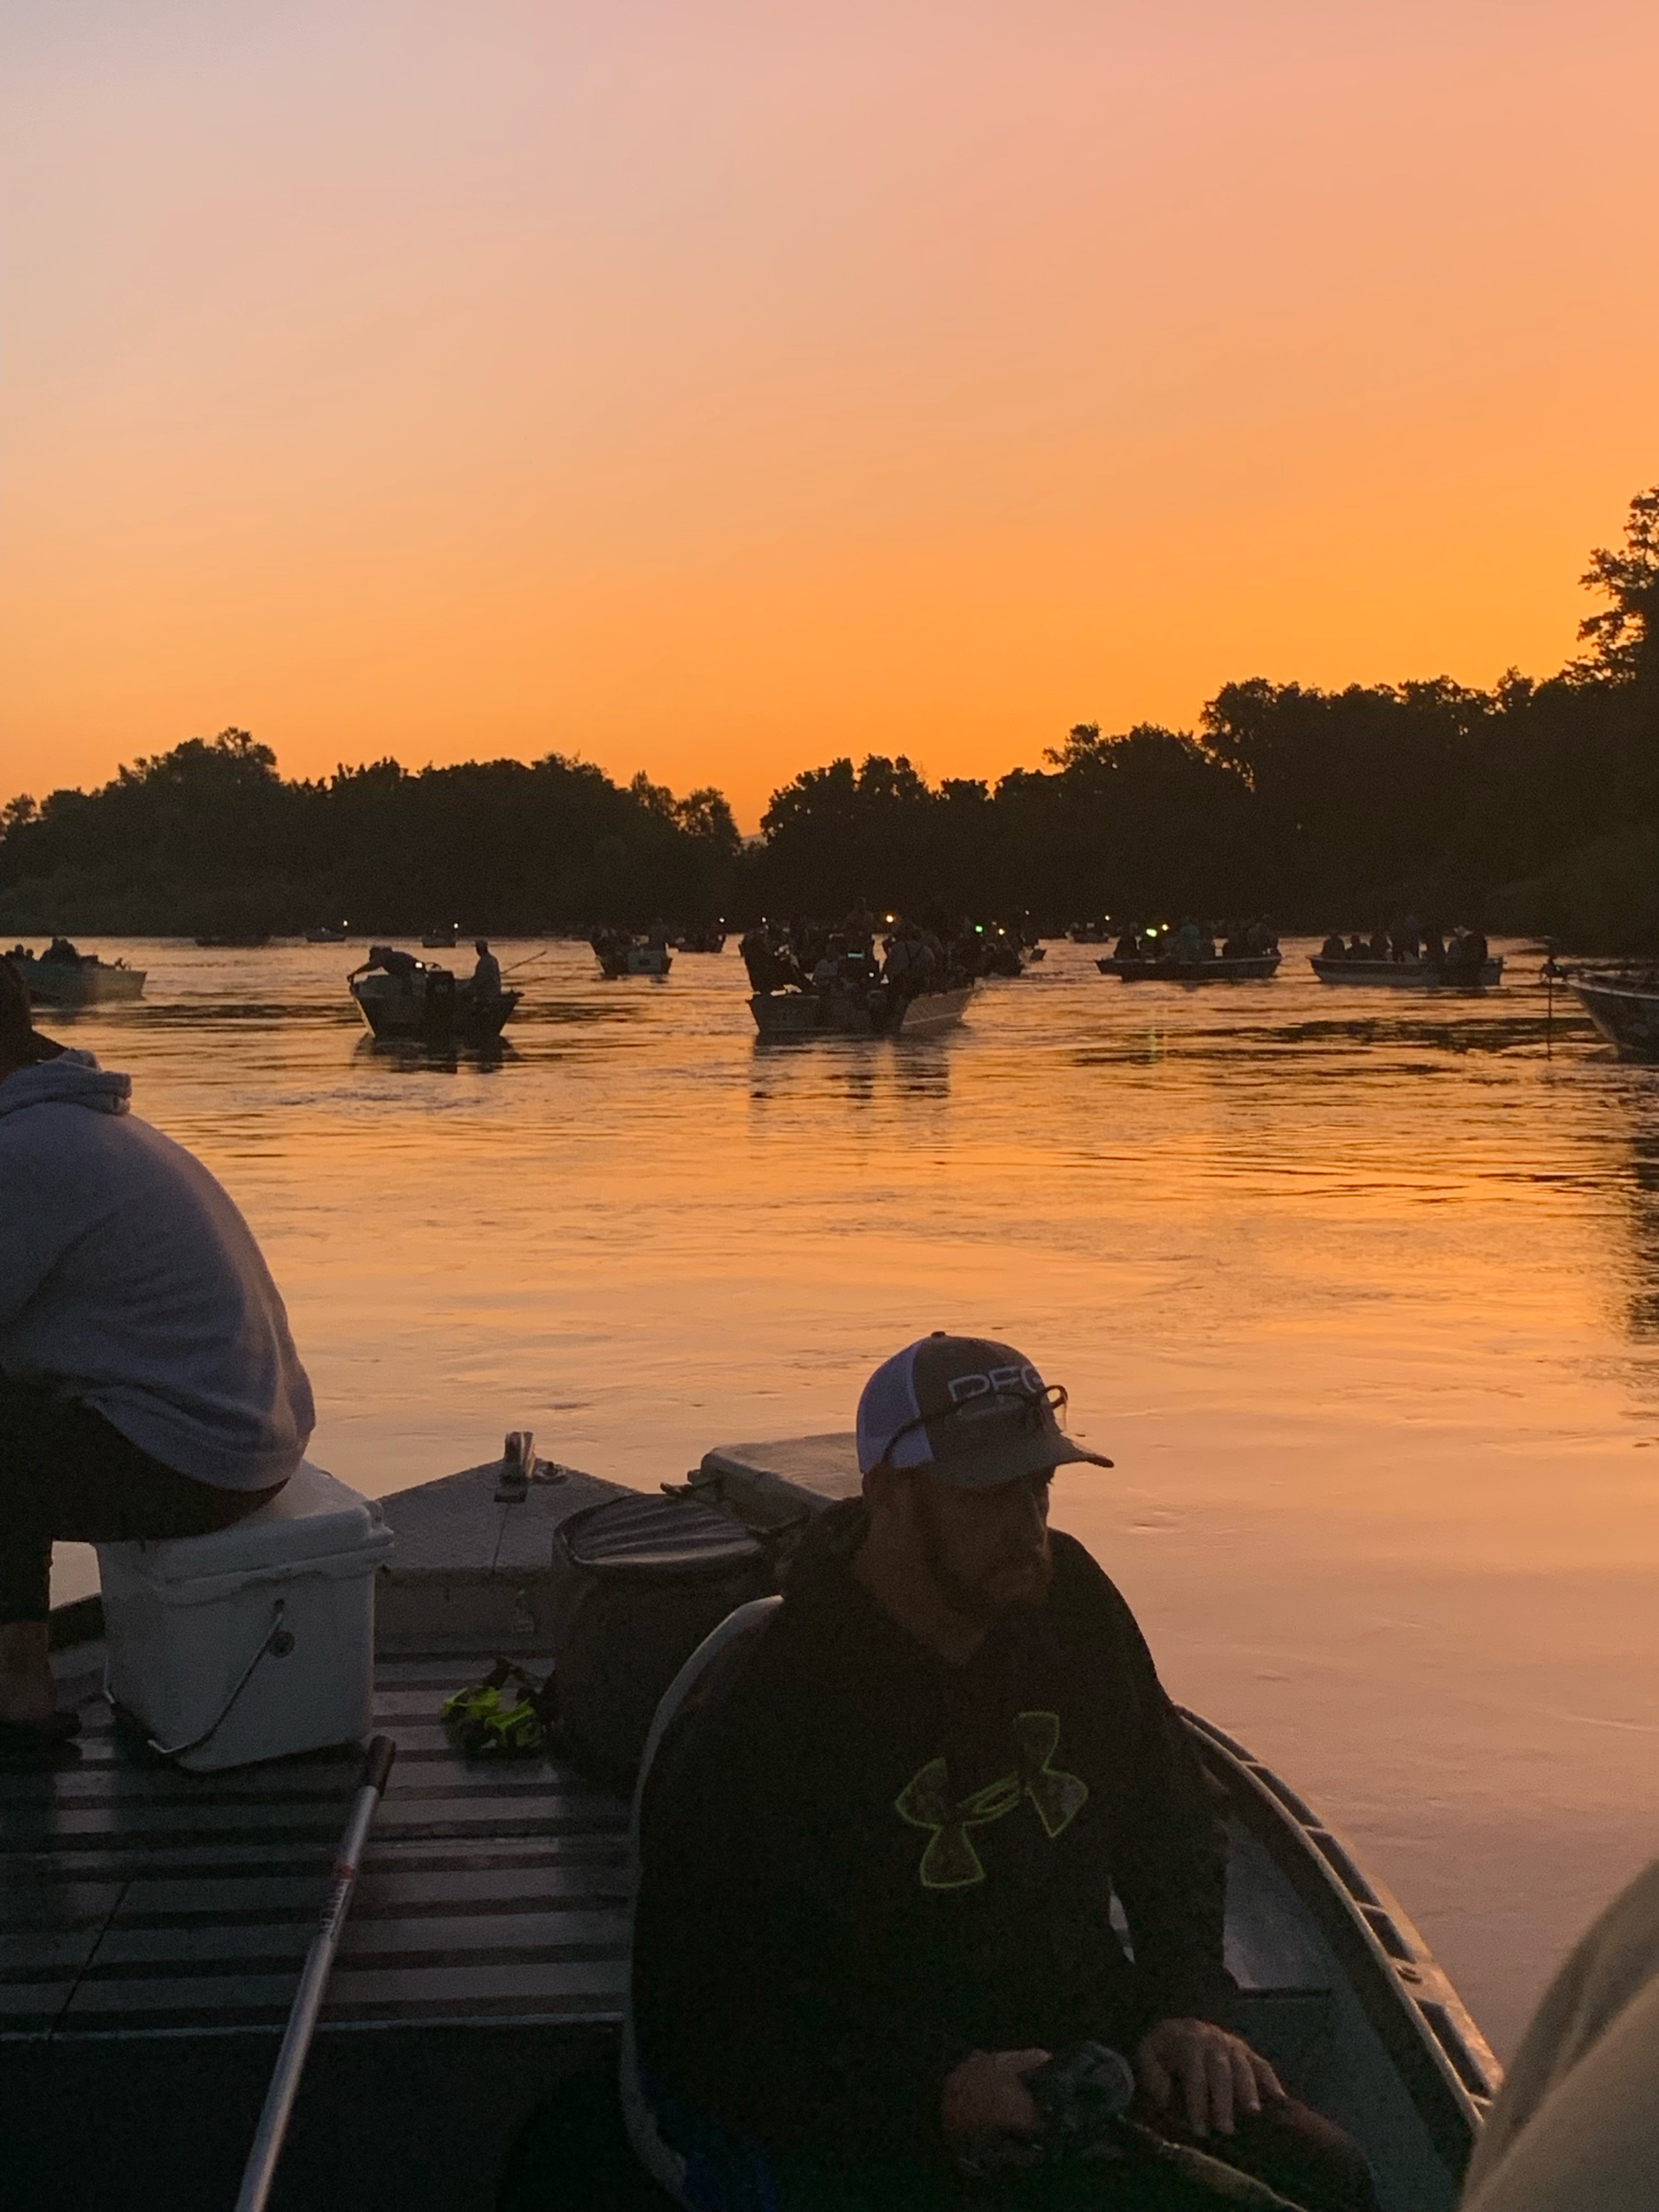 The scene from the August 1, 2019 salmon season opener at the Barge Hole near Cottonwood, Ca in Northern California.